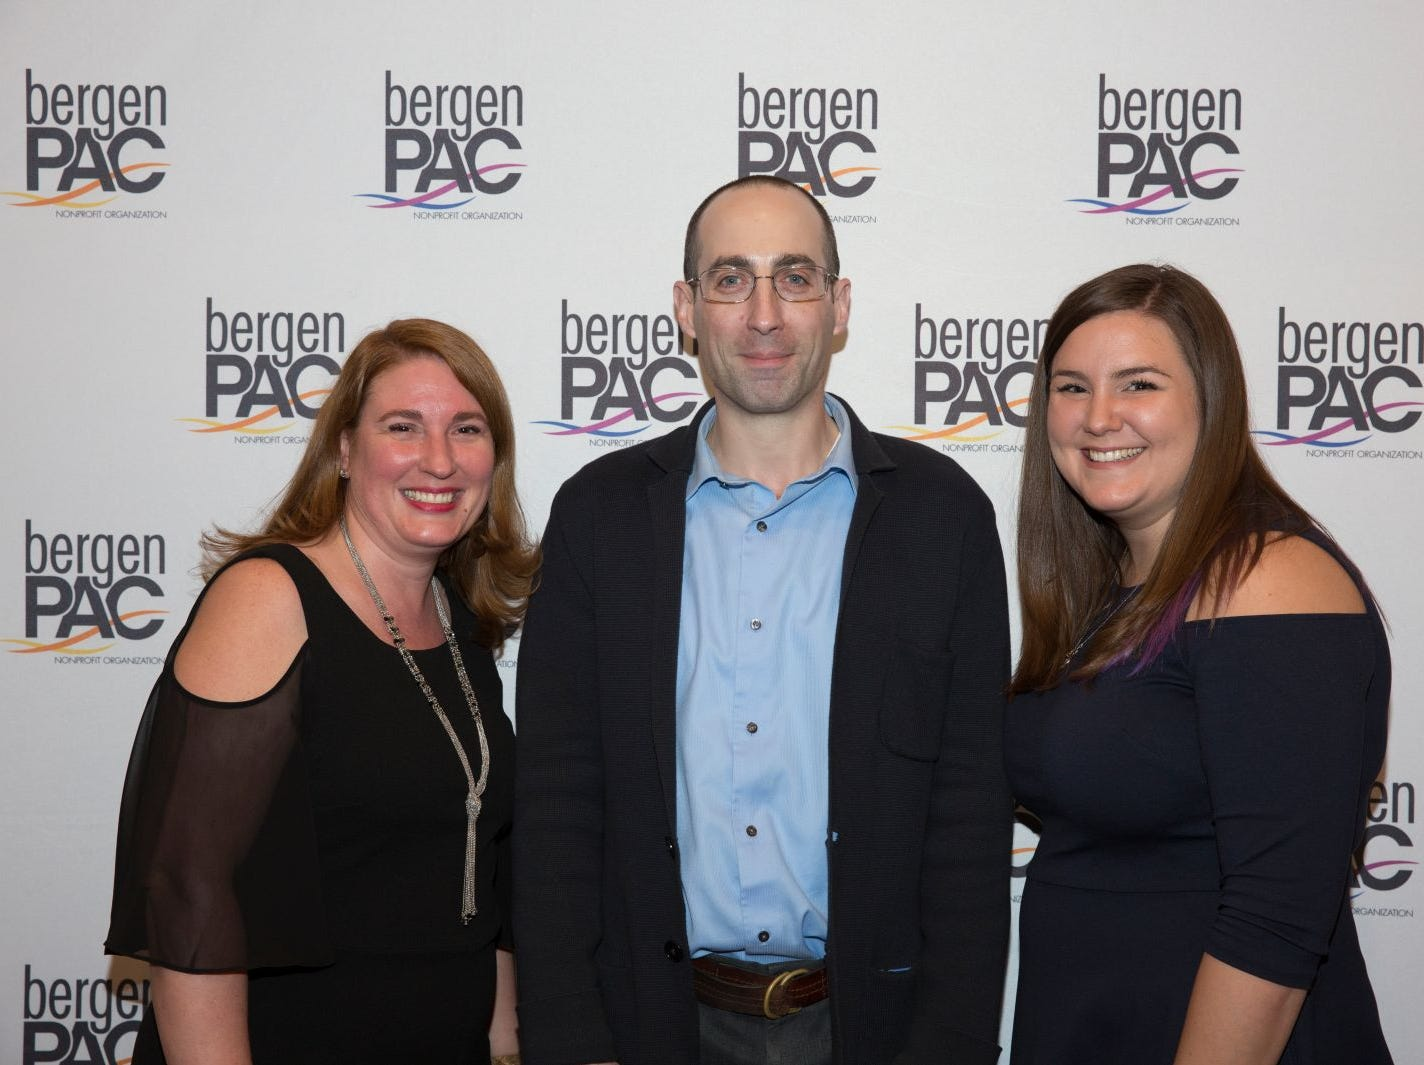 Diane Niedzialek, Sam Passow, Tori Greig. BergenPAC held its annual fall gala featuring John Fogerty in Englewood. This year's honoree was Fernando Garip, from Wilmington Trust and M&T Bank. 11/08/2018